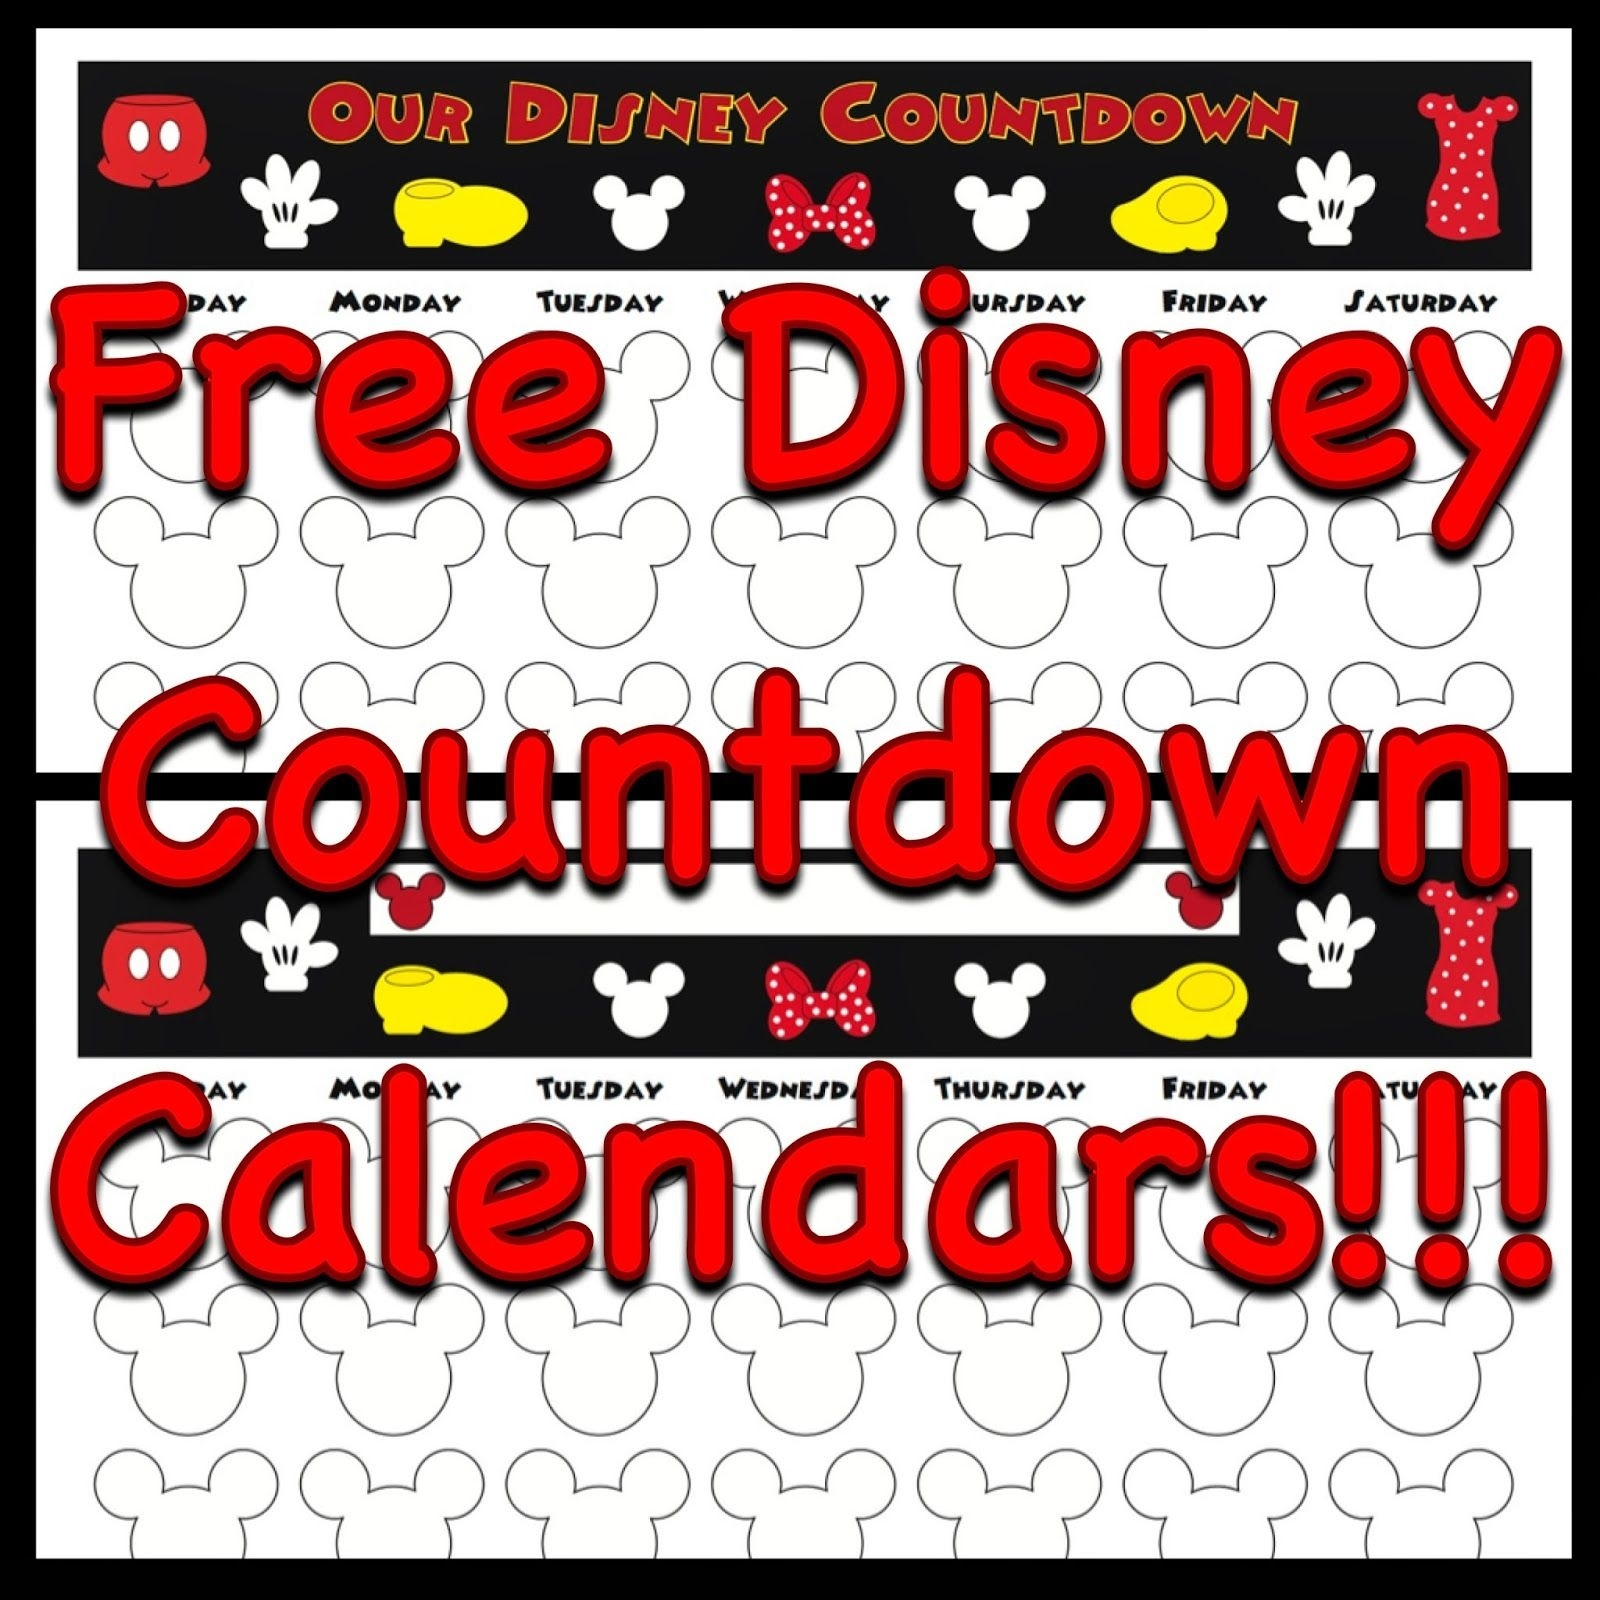 Free, Printable Countdown Calendars To Use For Your Next Printable Disney Countdown To 60 Calendar